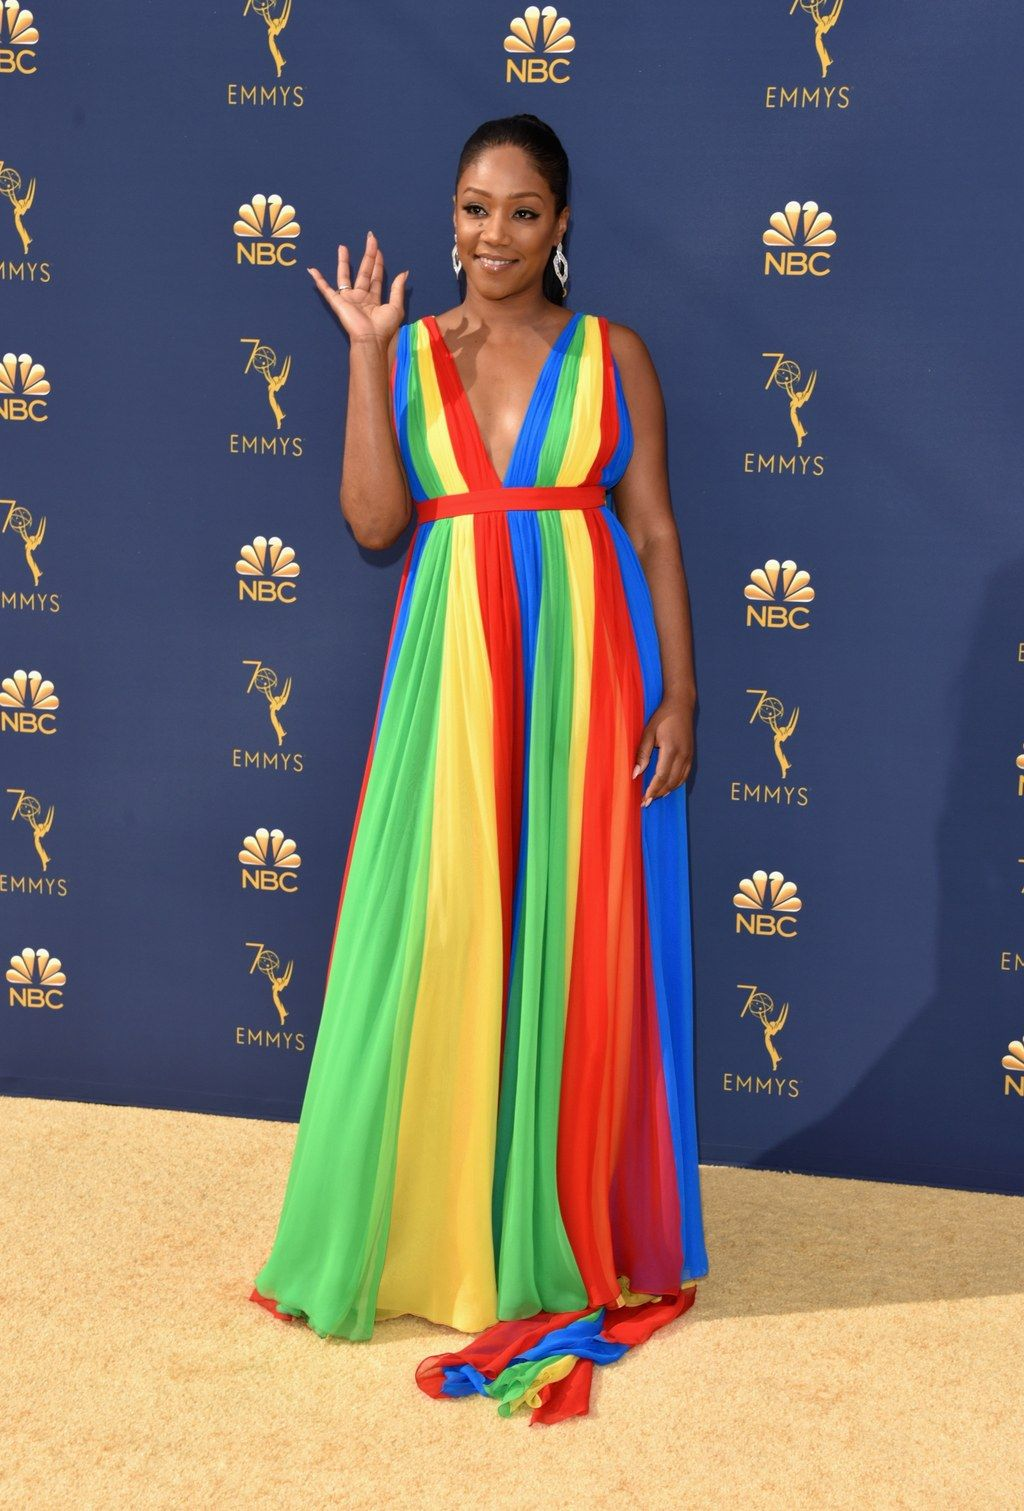 2b334db920 The 25 Best Looks From the 2018 Emmys Red Carpet in 2019